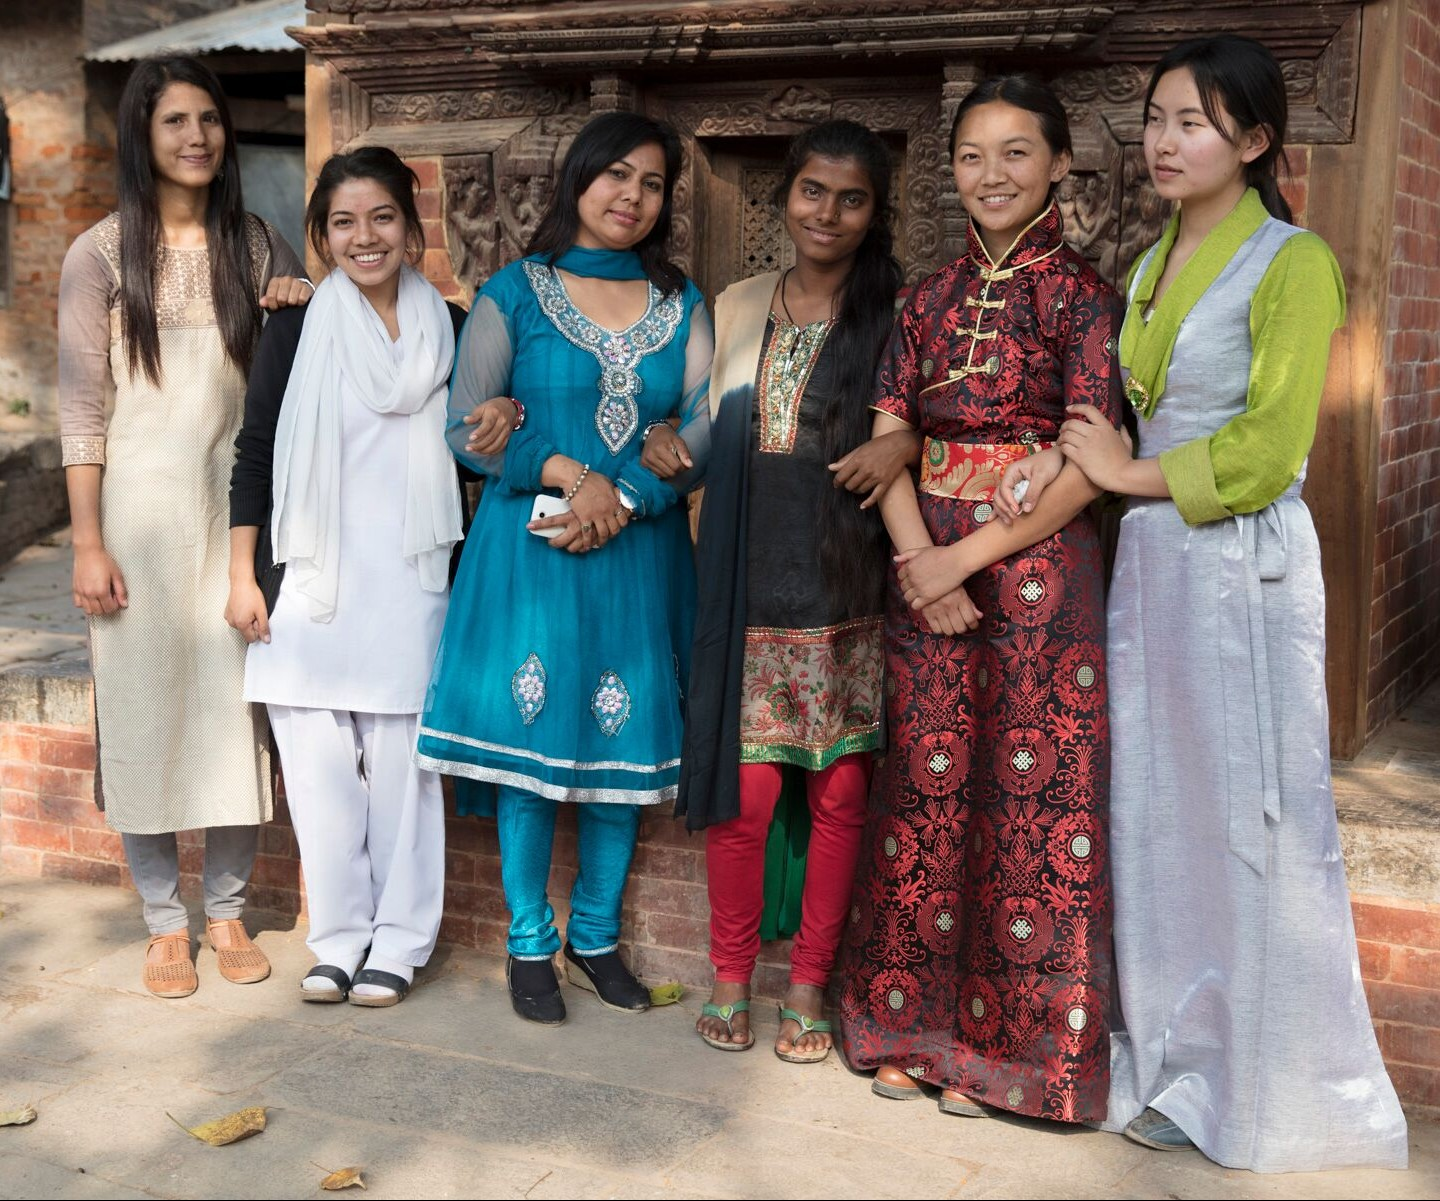 ellyn norris more nepal newsletter